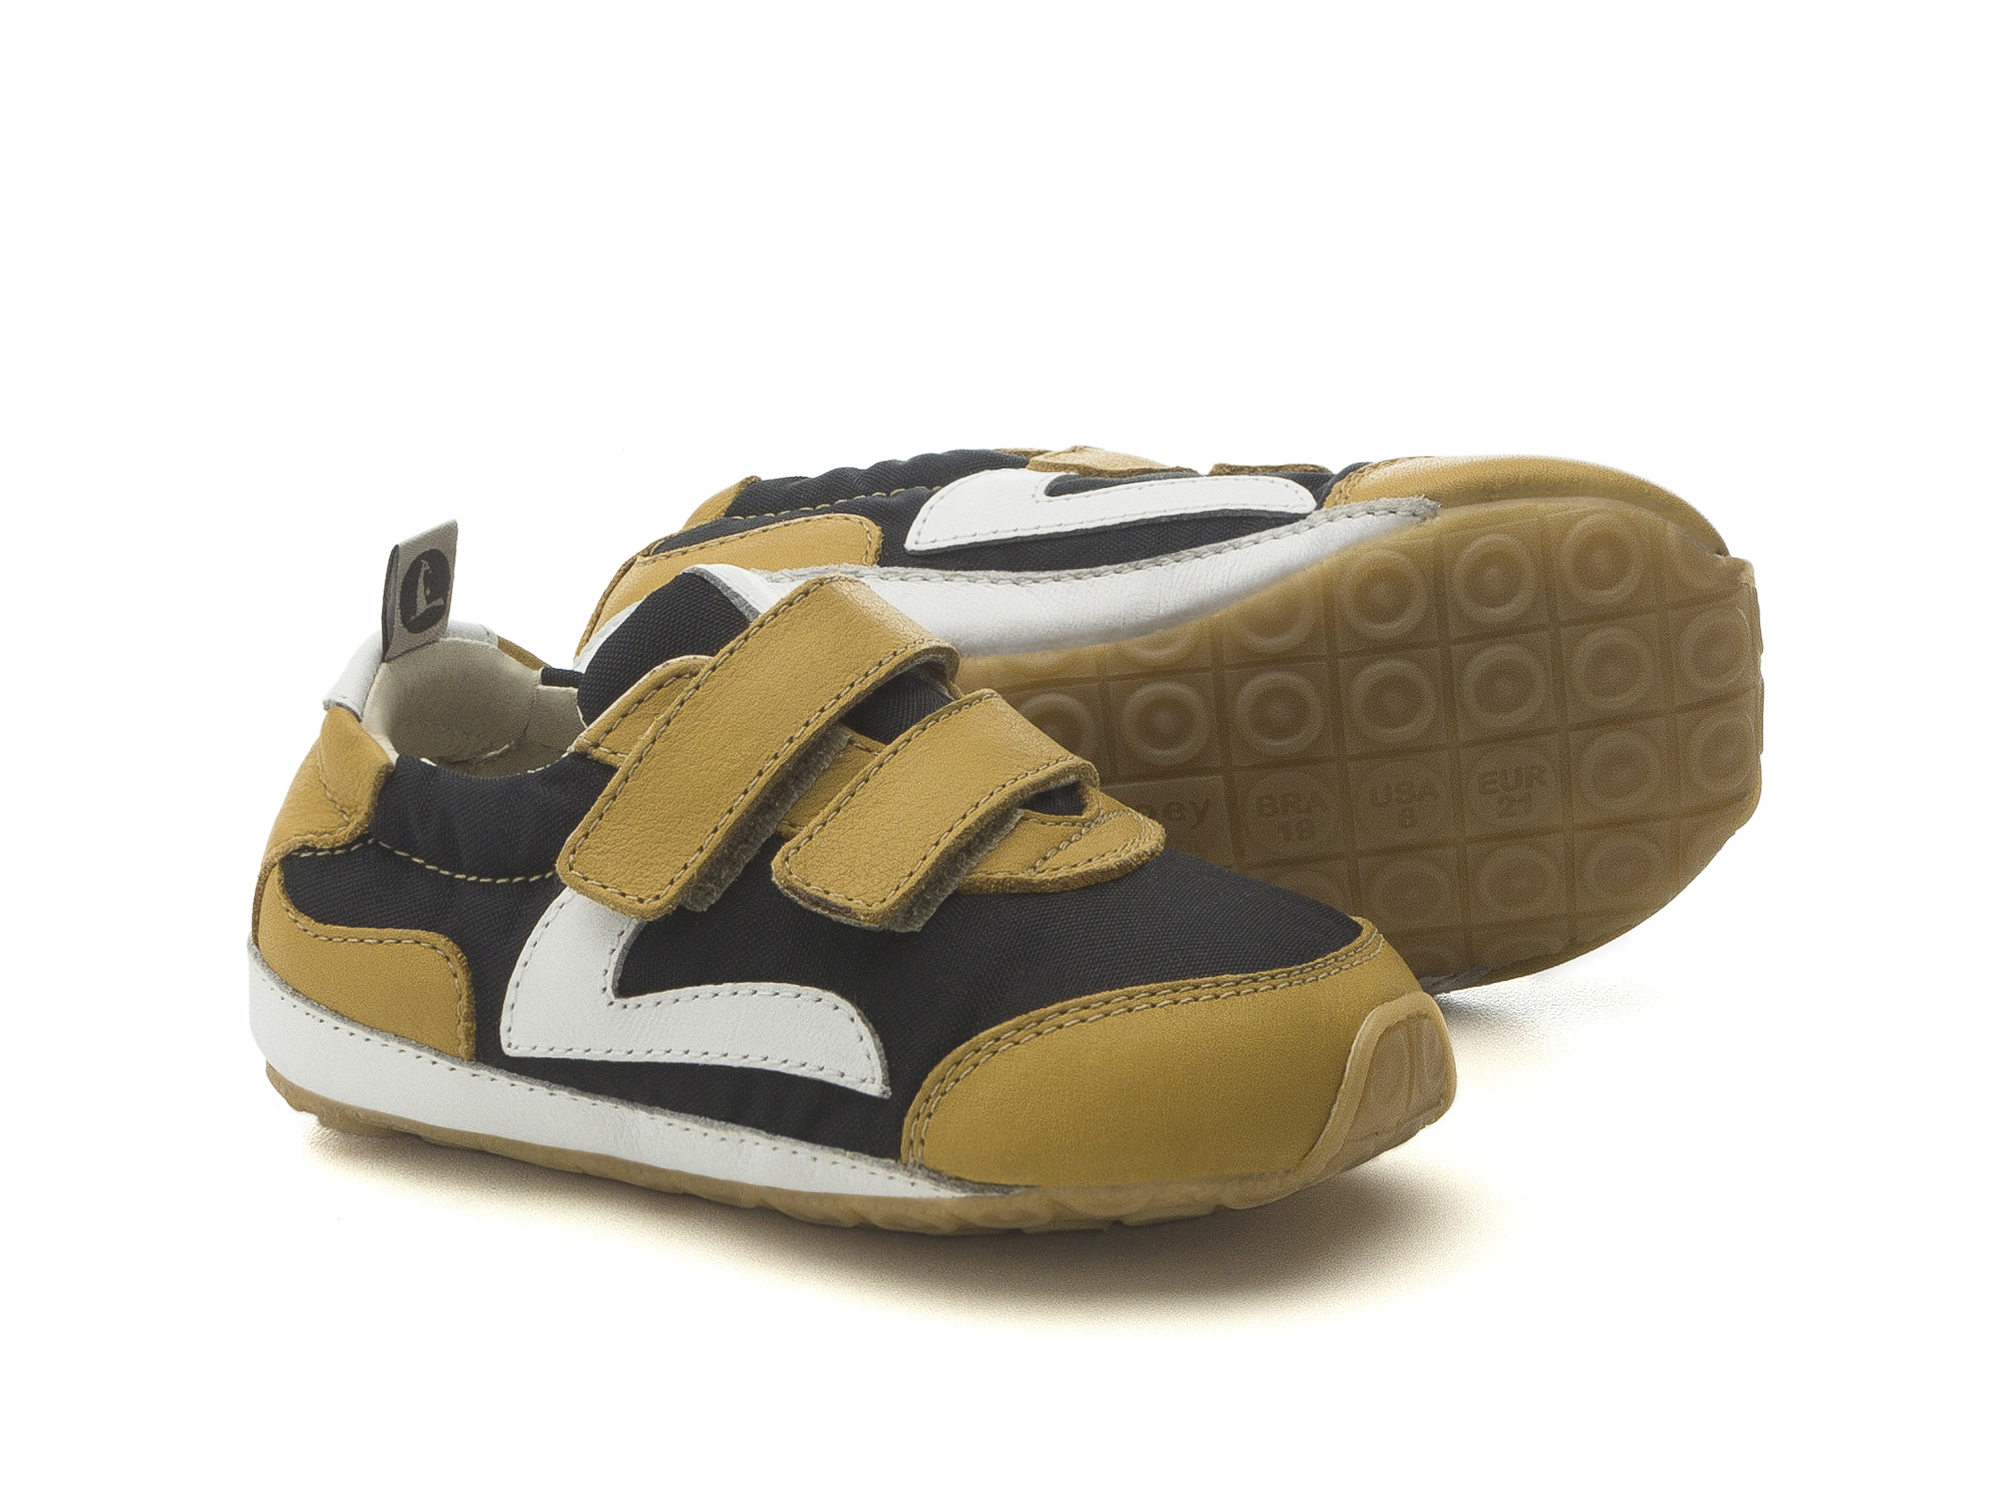 Tênis Jumpy Black Nylon/ Yellow Blur Baby for ages 0 to 2 years - 2